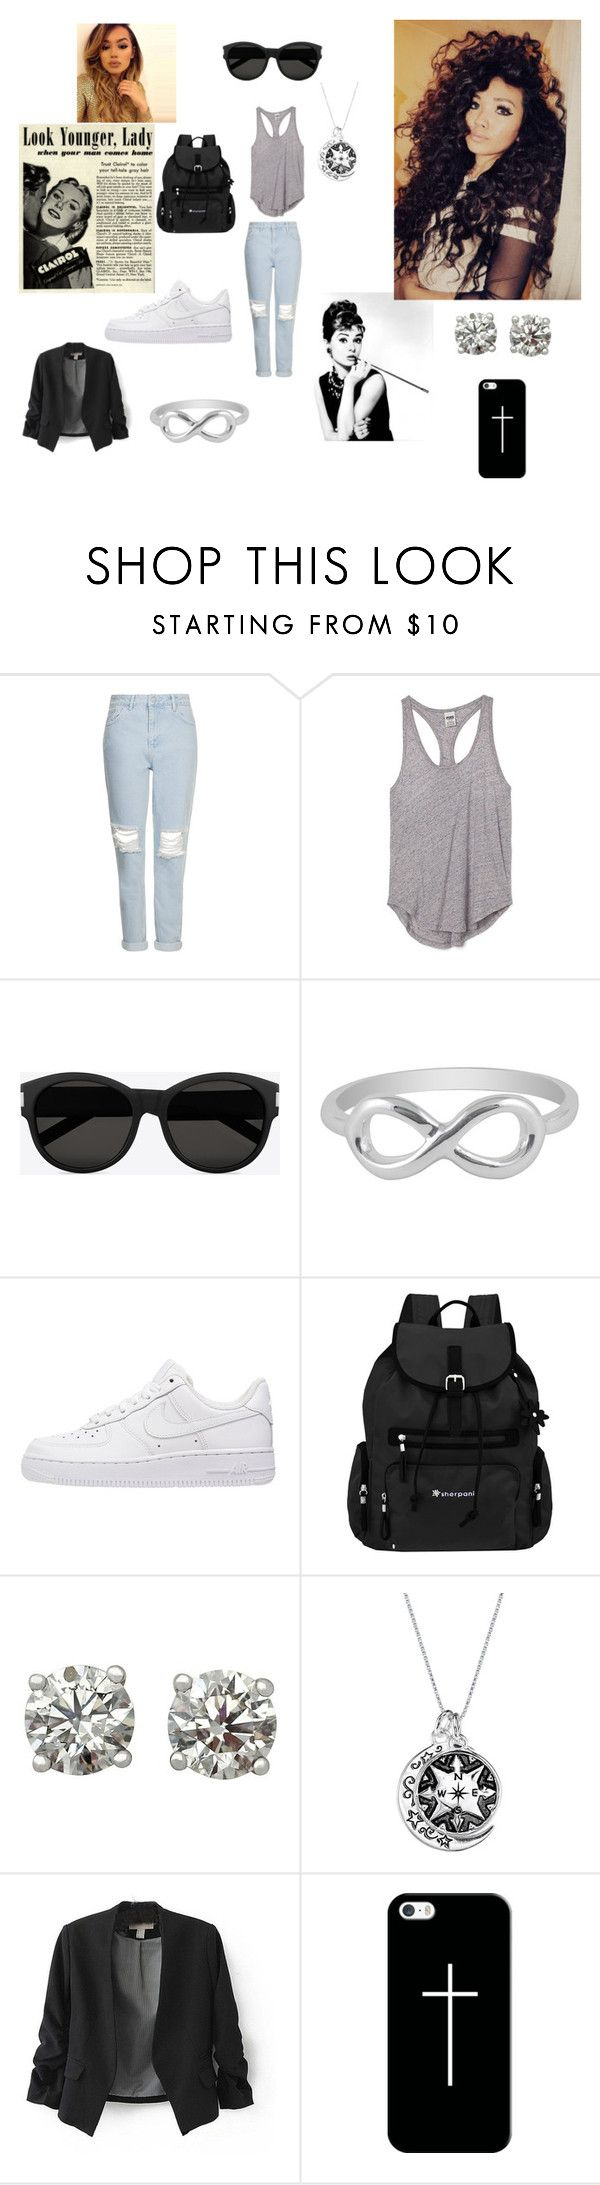 LOOK by olgasanchez09 on Polyvore featuring moda, Victoria's Secret PINK, Topshop, NIKE, Sherpani, Jewel Exclusive, Casetify, Yves Saint Laurent and Luxo